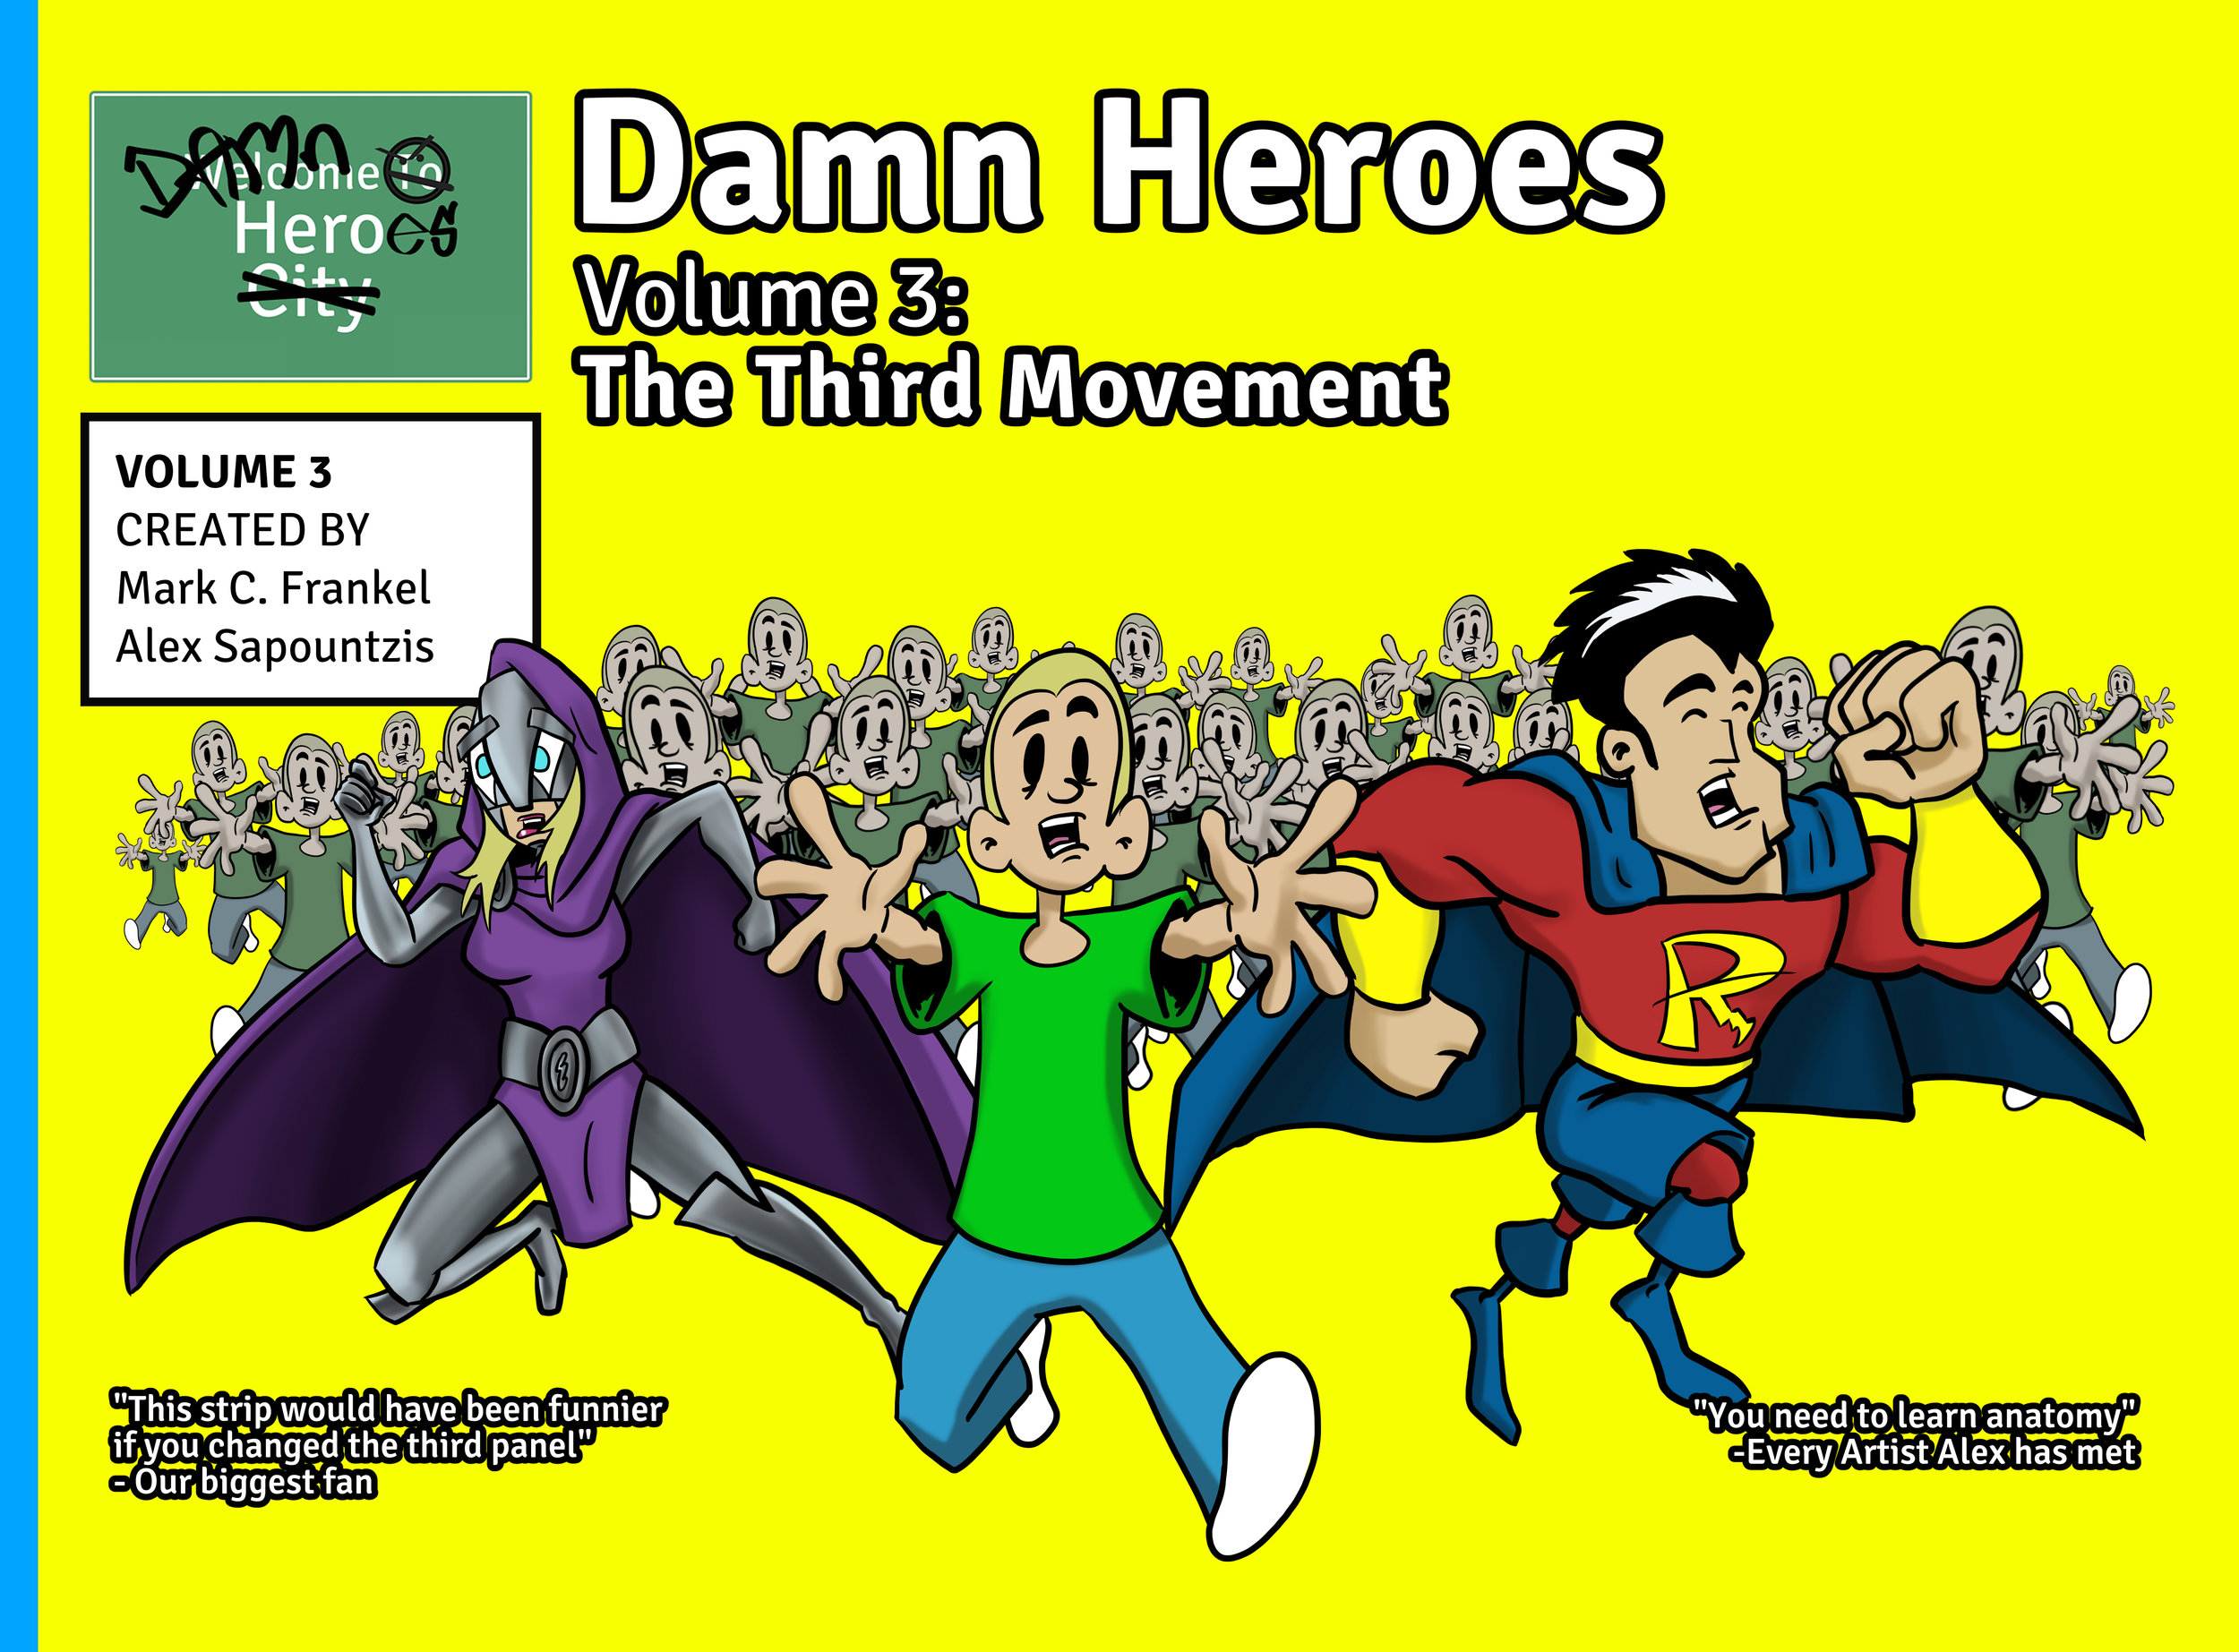 Exclusive for NYCC: First Edition of Damn Heroes Volume 3!